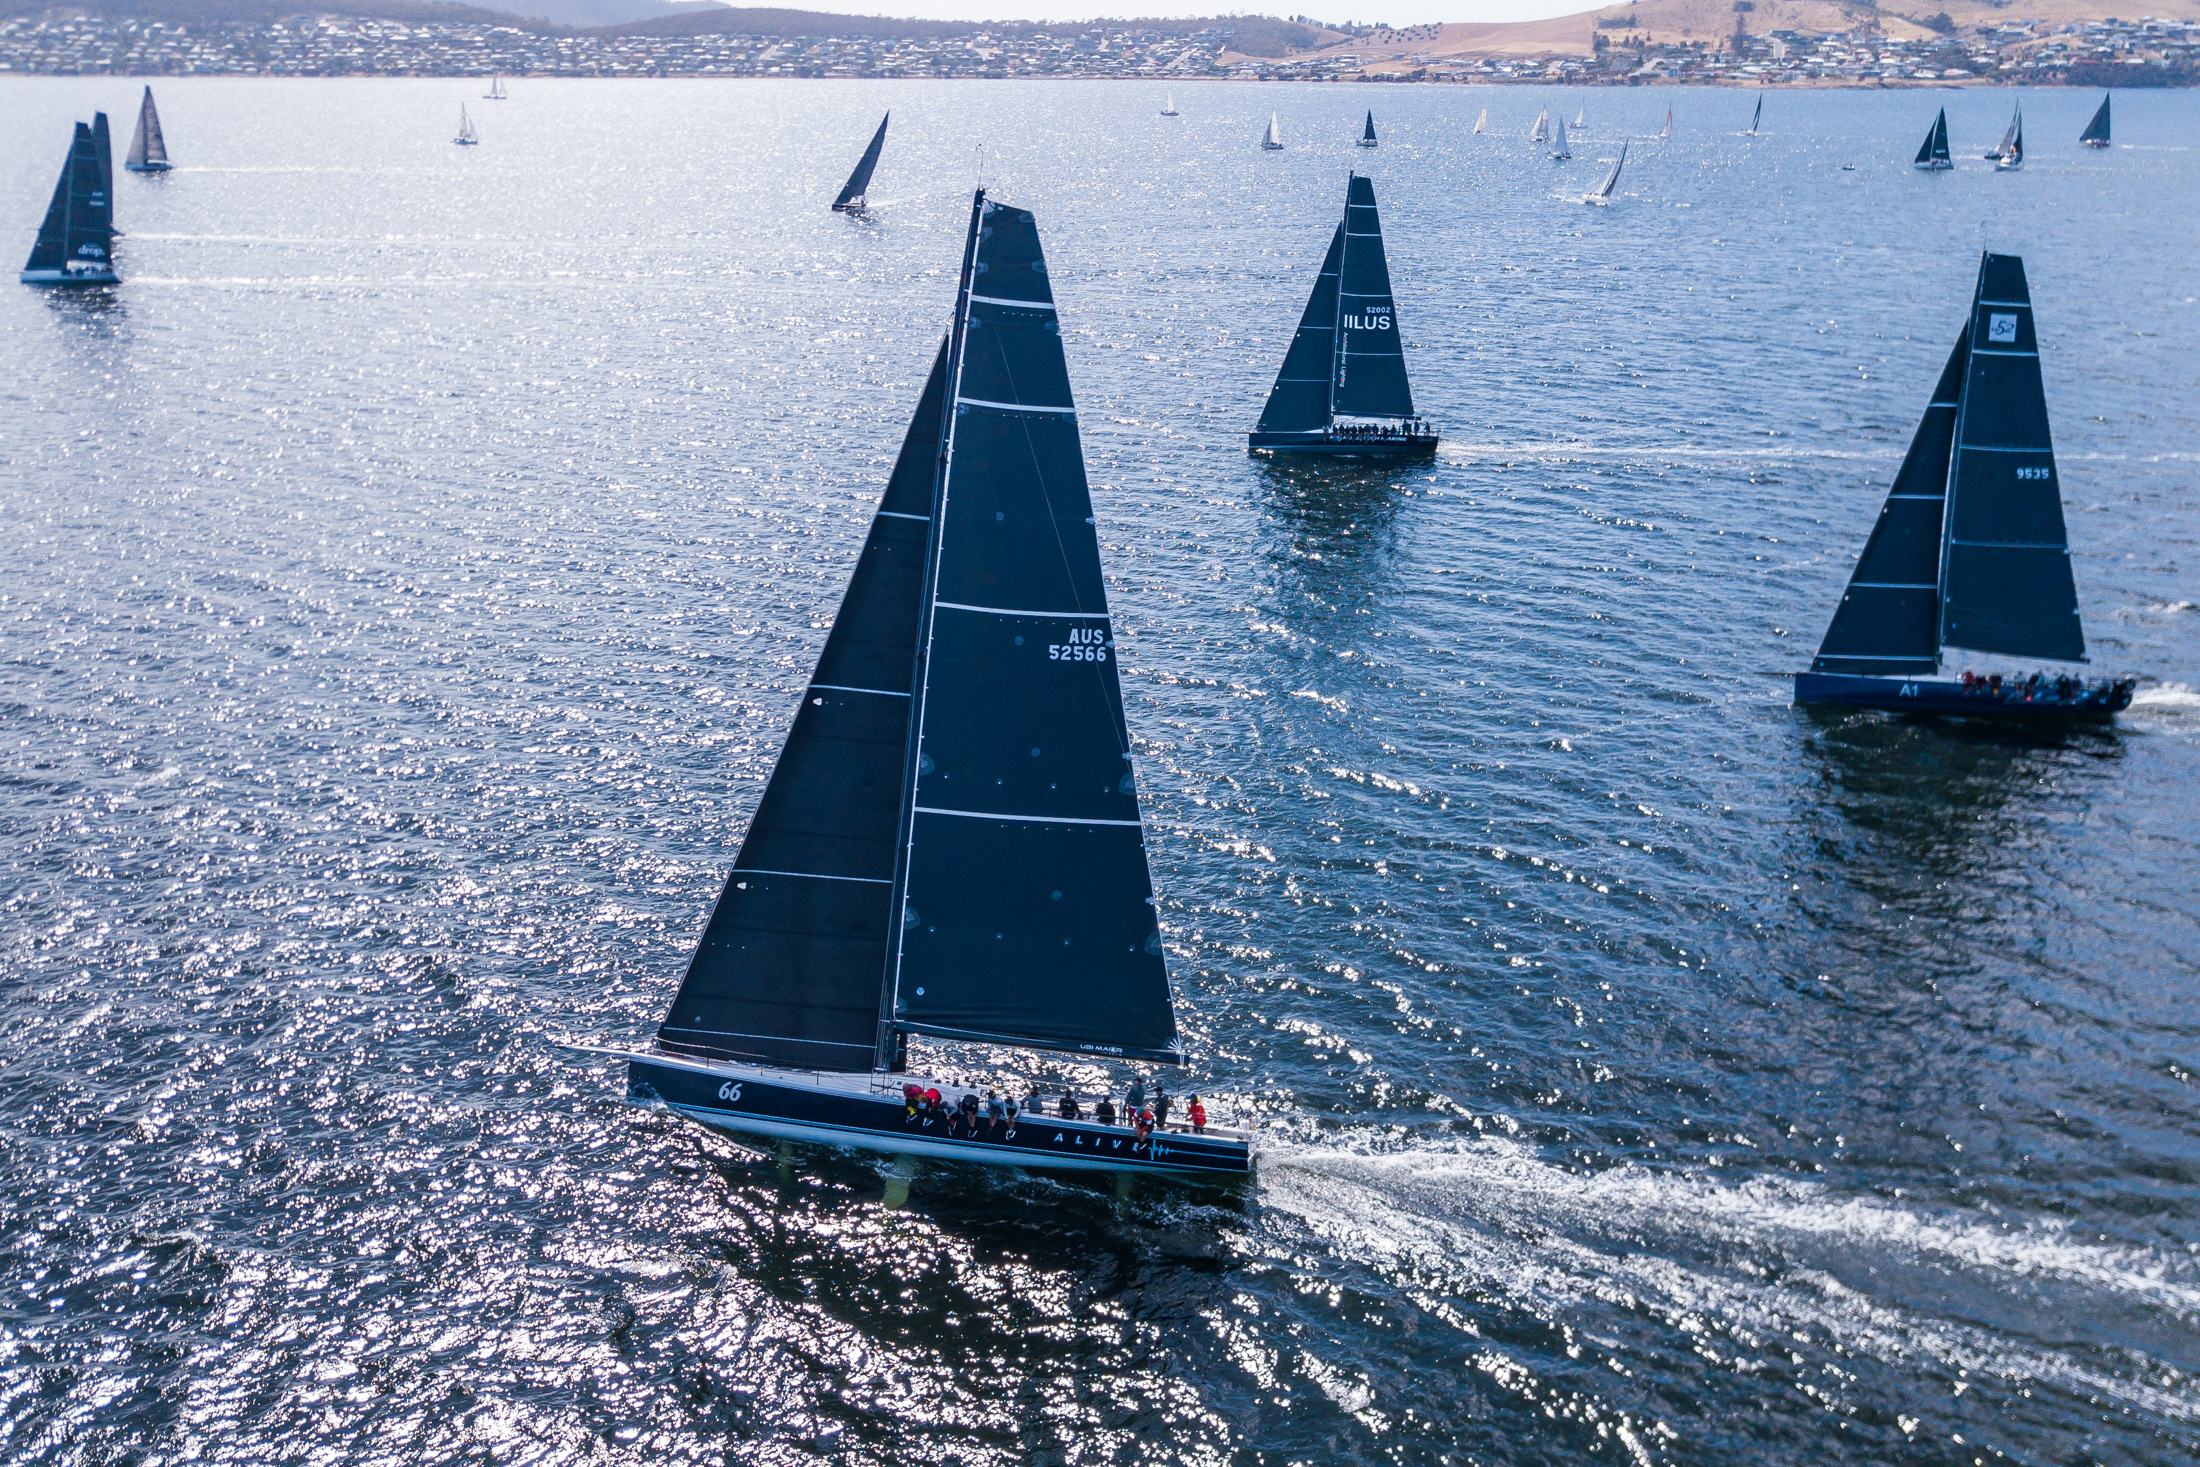 Aerial shot of yachts racing upwind